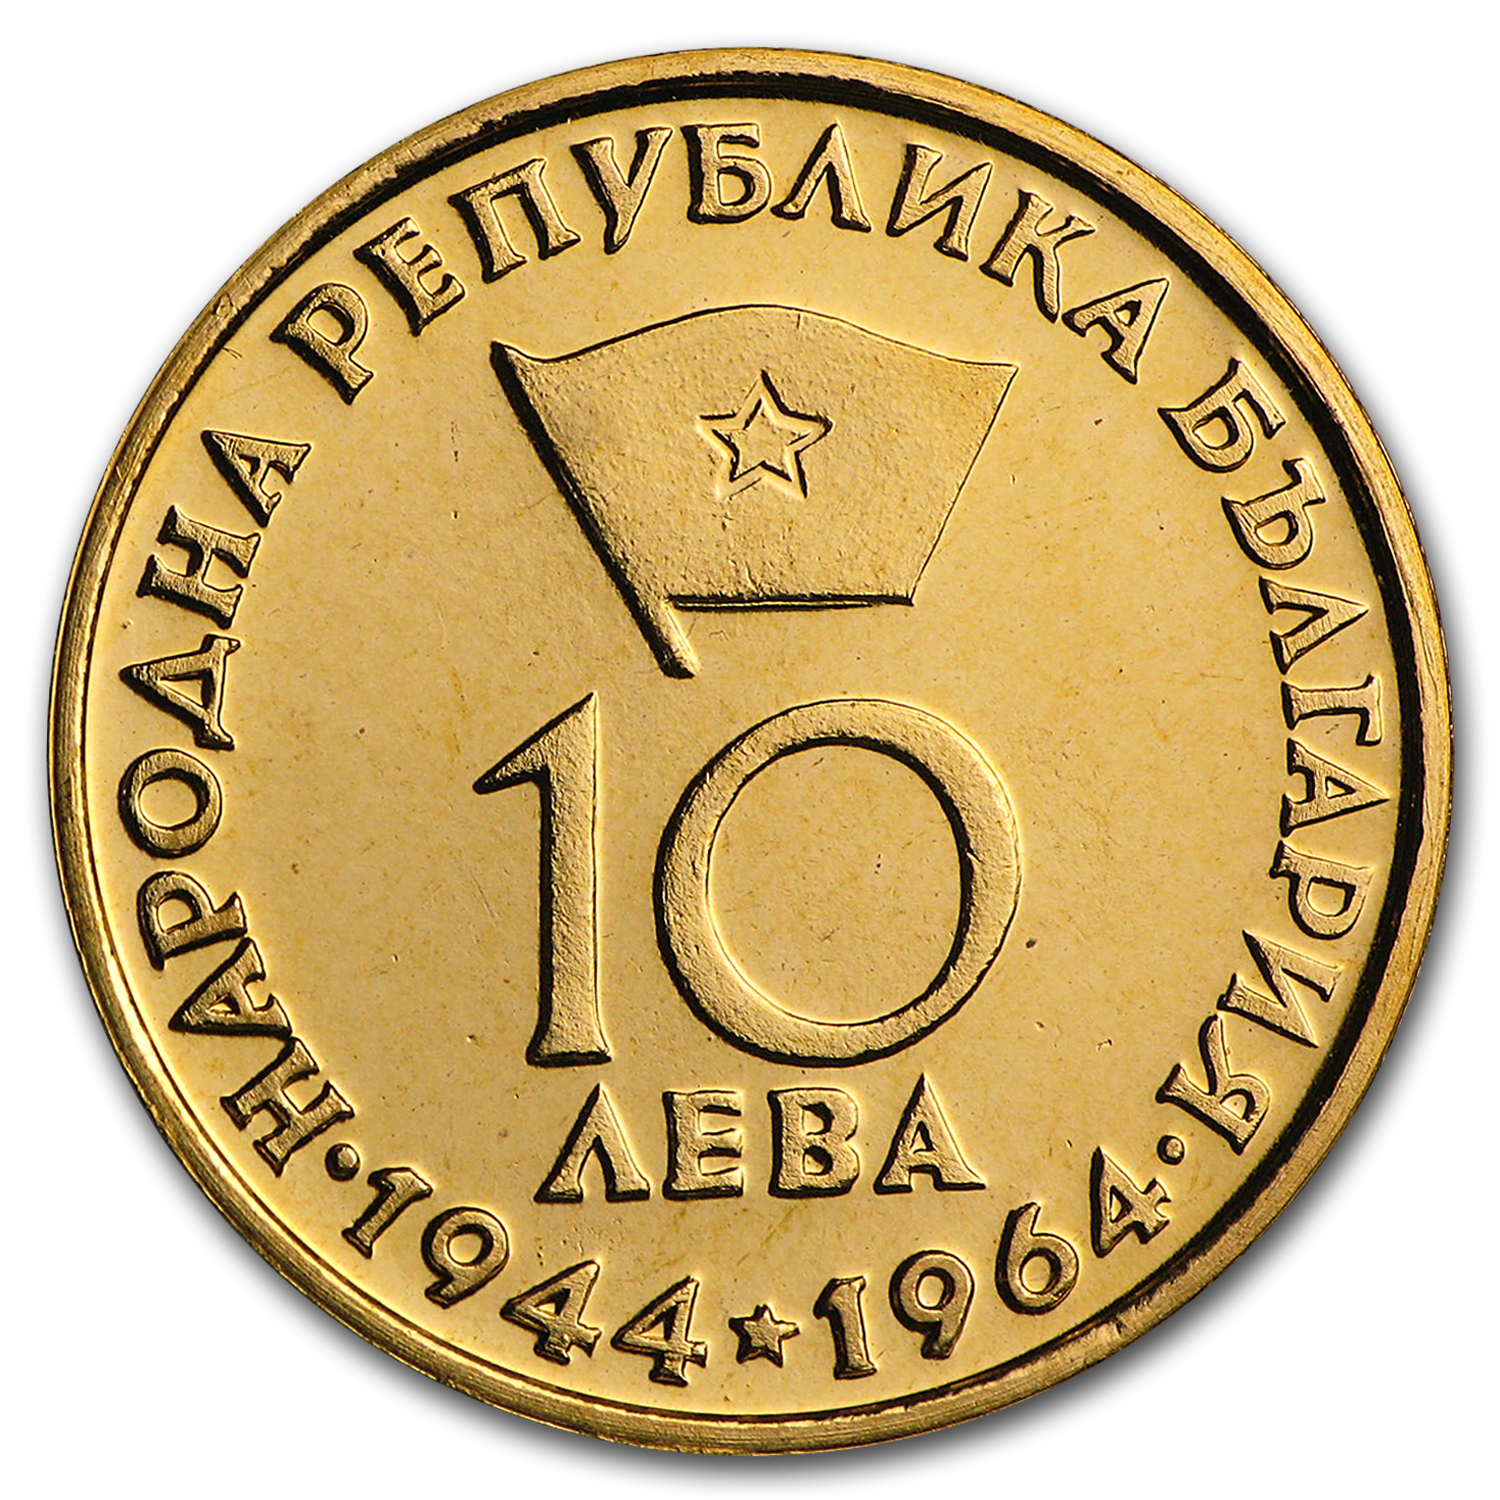 1964 Bulgaria Gold 10 Leva 20th Anniv of the Republic Proof